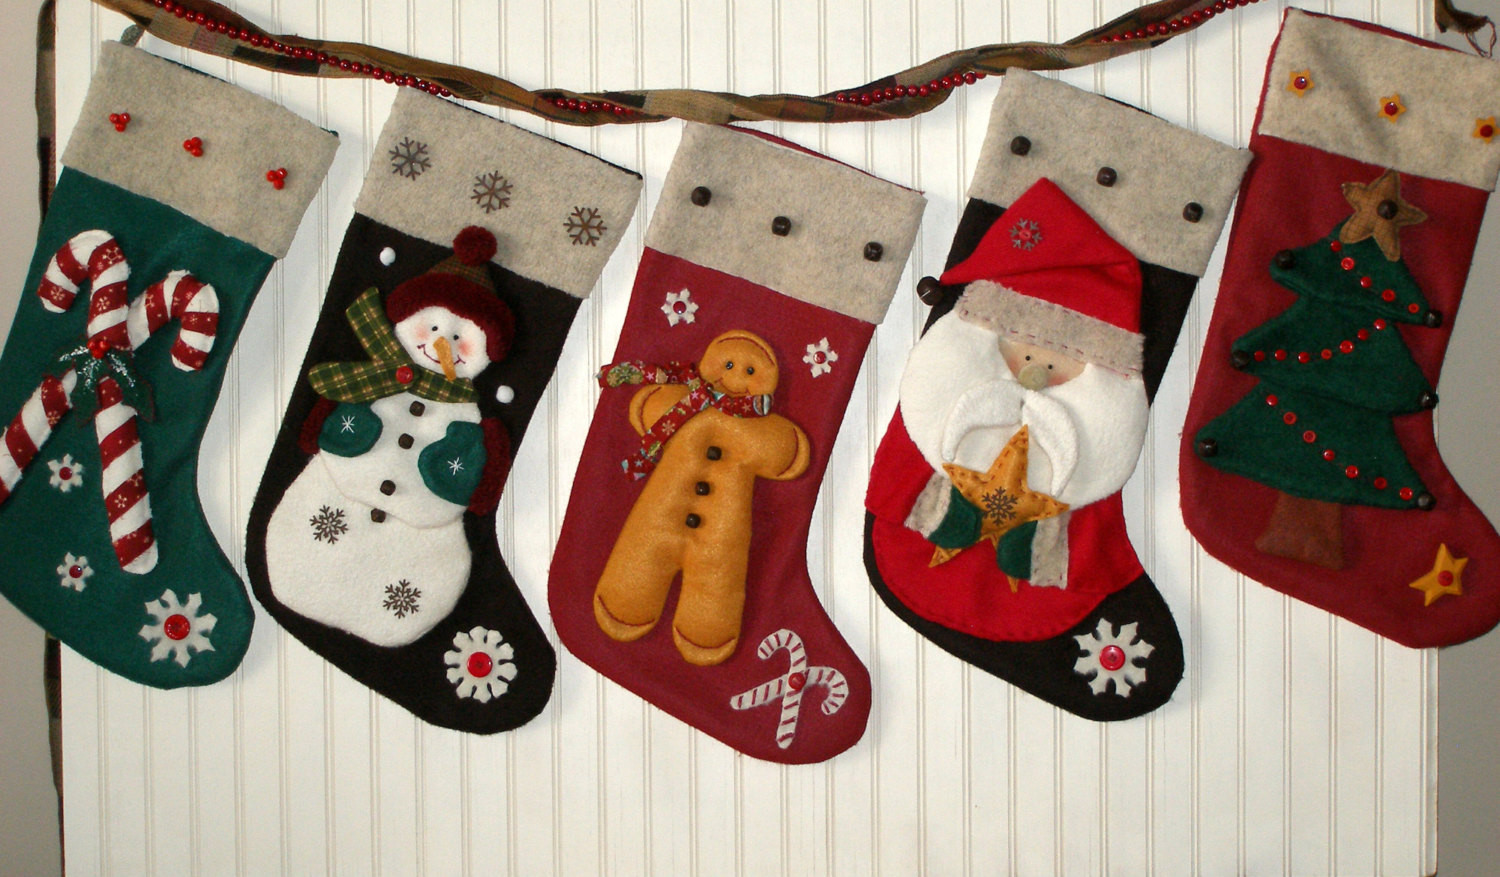 Christmas Stocking Candy  Christmas Stocking Santa Stocking Candy by RoseCottagePatterns